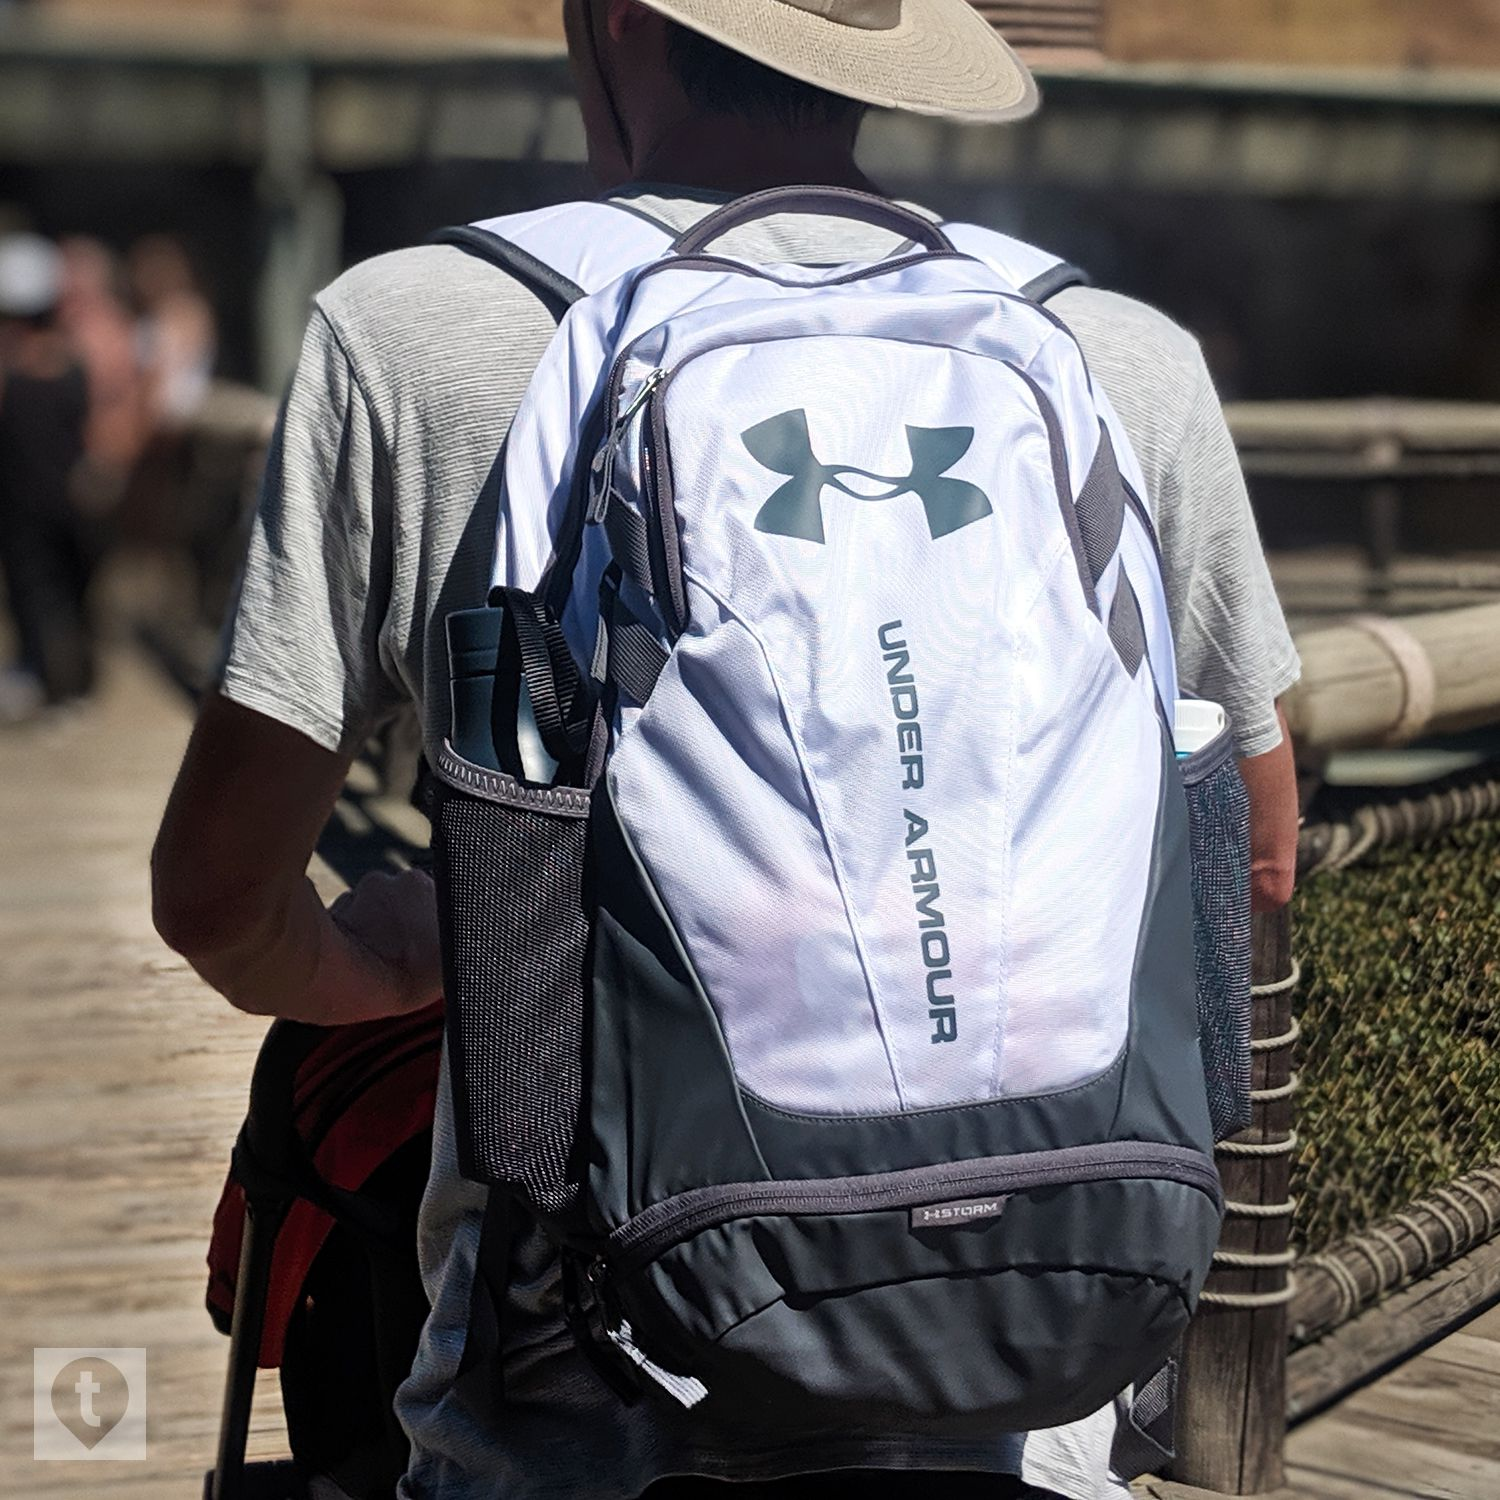 Under Armour Hustle 3.0 Backpack Review